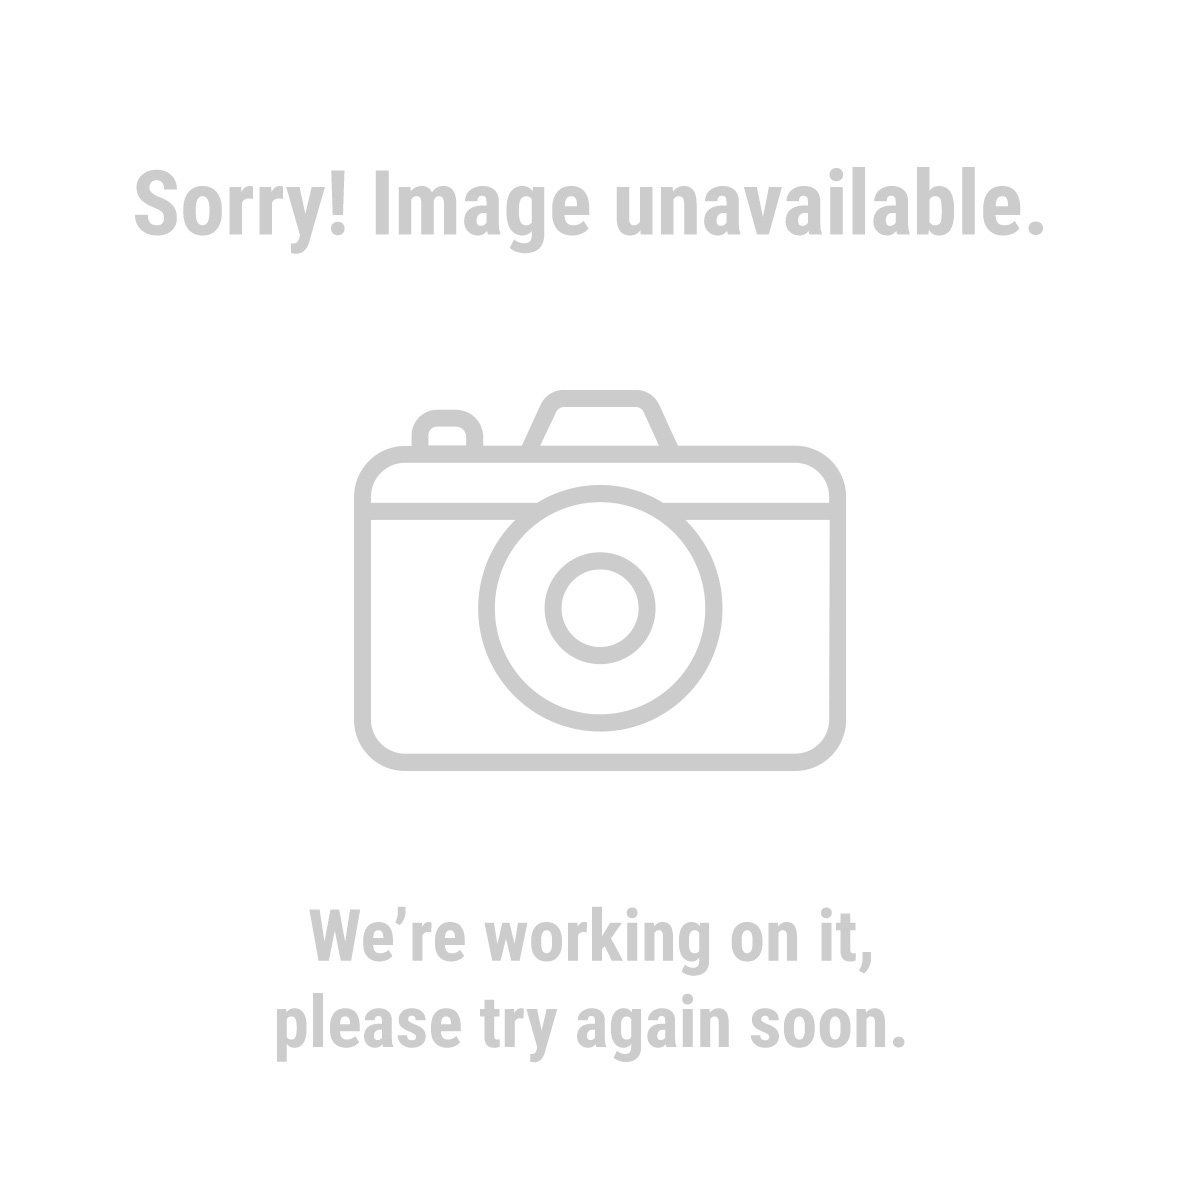 Pittsburgh Automotive 69284 12 Volt, 100 PSI High Volume Air Compressor